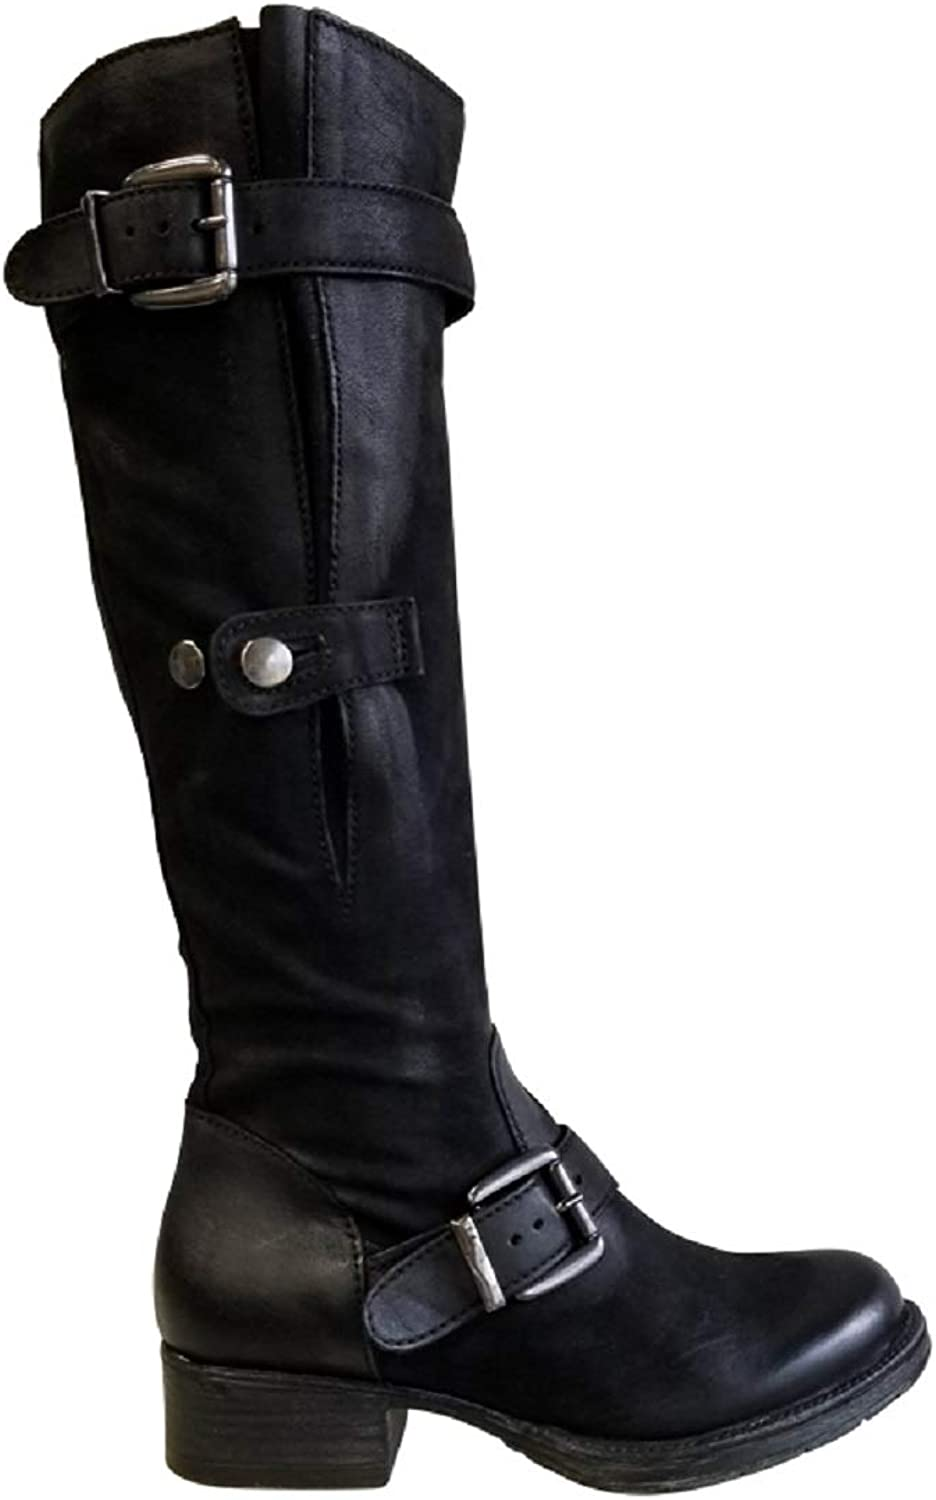 Mjus Black Leather Boot. 135306 Size 10